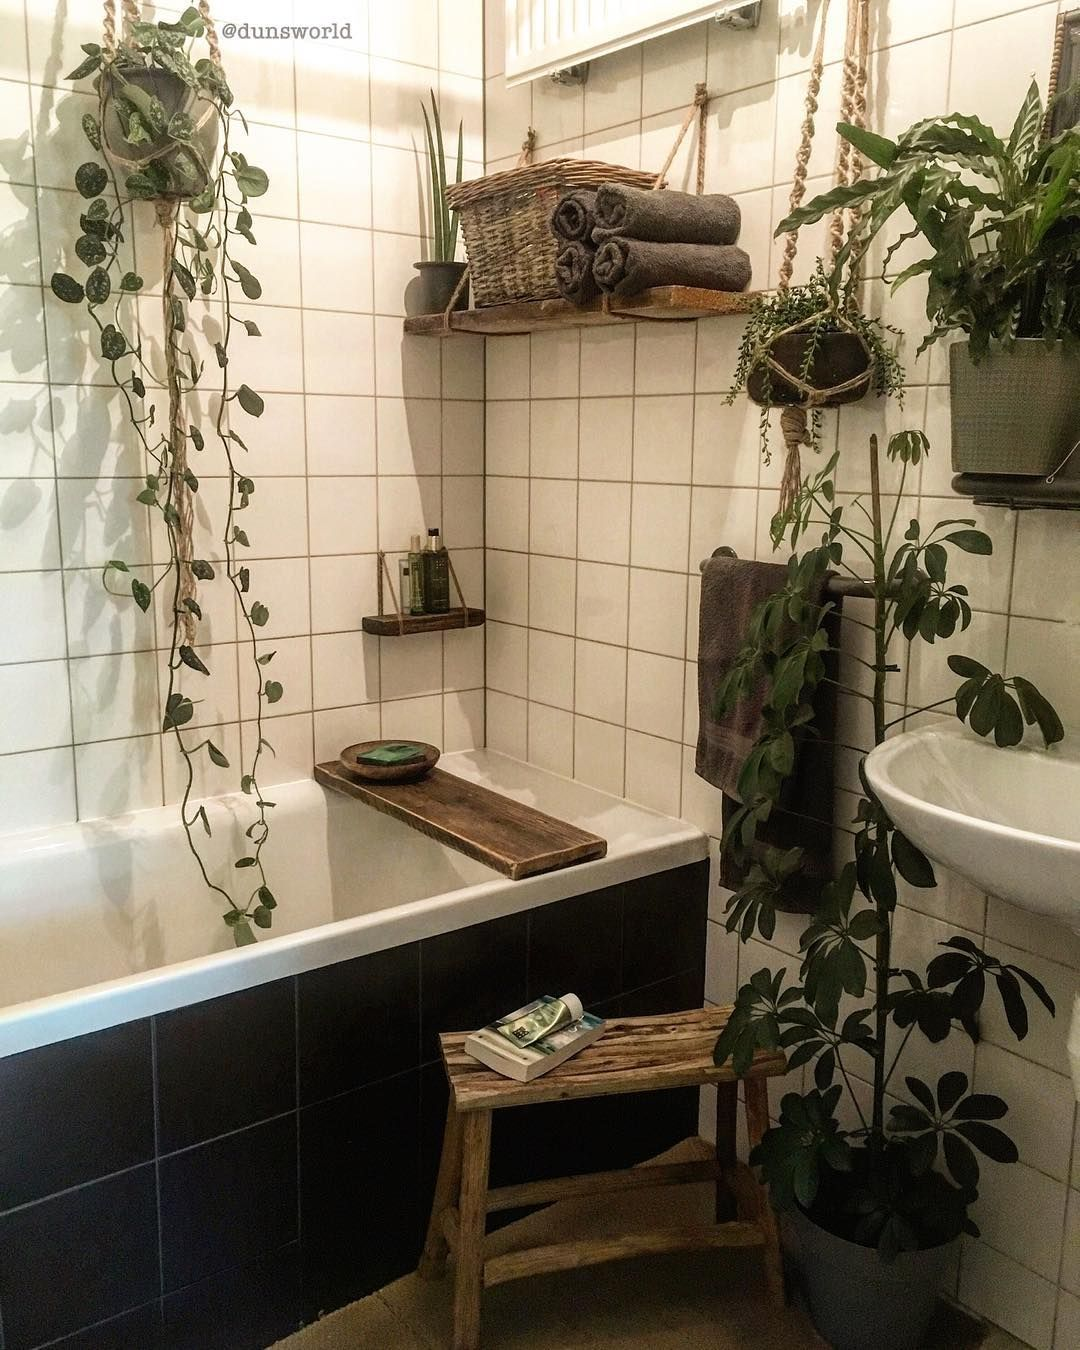 B W Plants Small Bathroom Decor Bohemian Bathroom Bathroom Decor